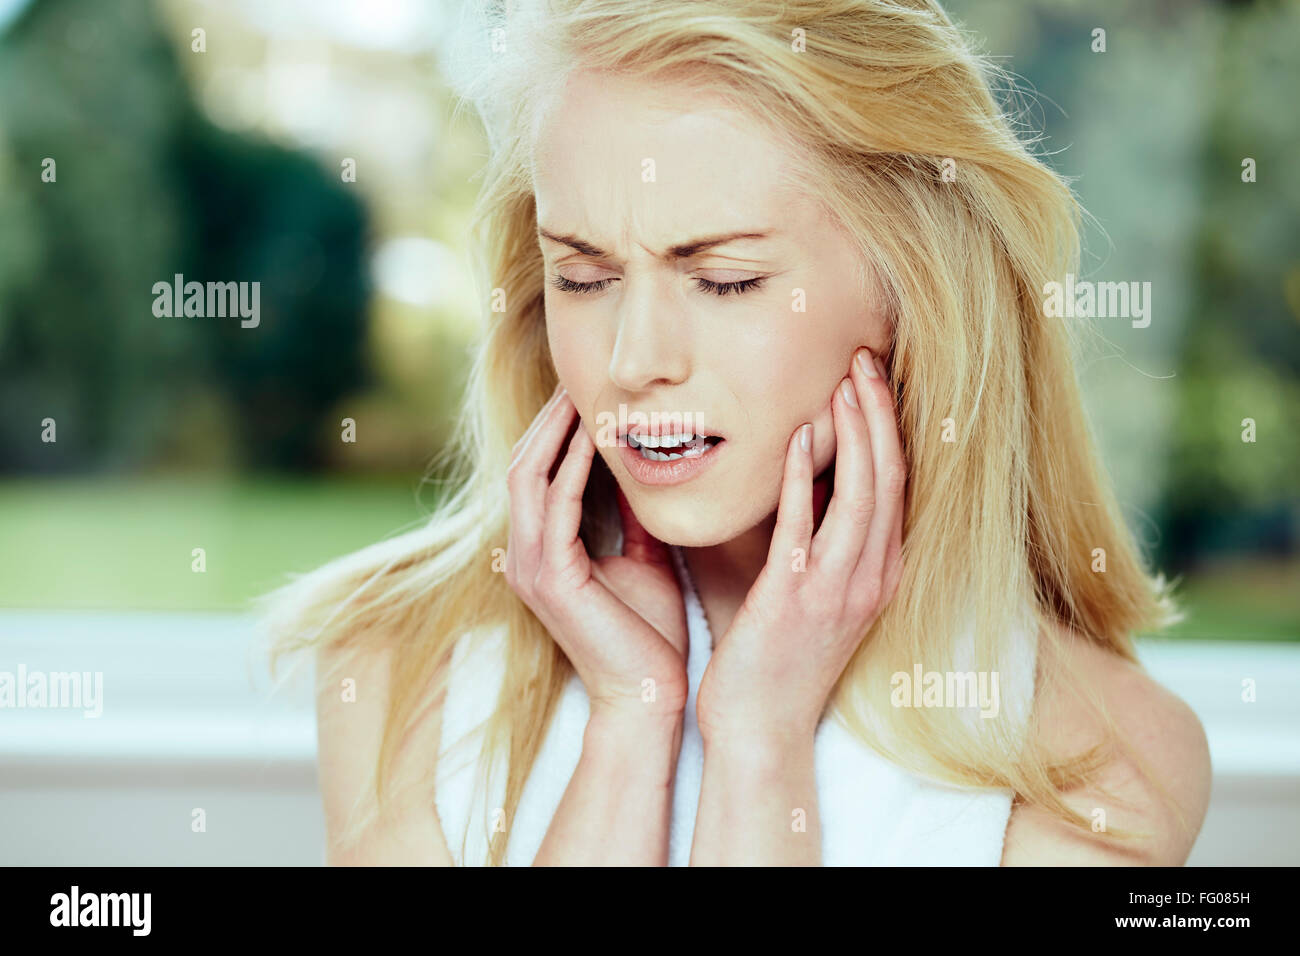 Girl with toothache - Stock Image